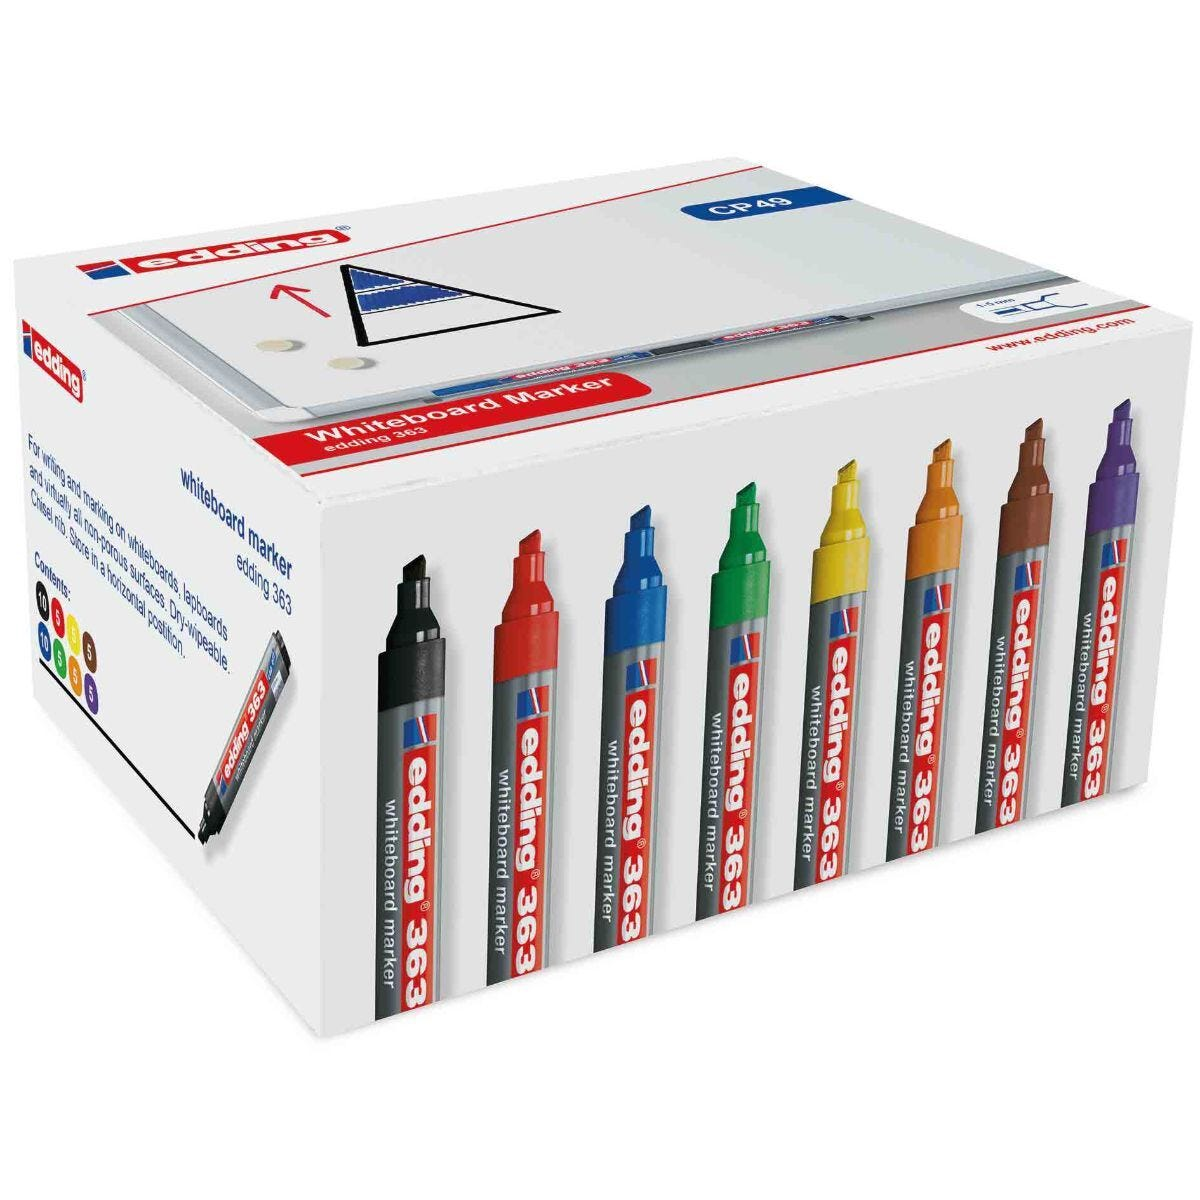 Edding 363 Drywipe Markers 8 Assorted Colours Pack of 50 Chisel Tip